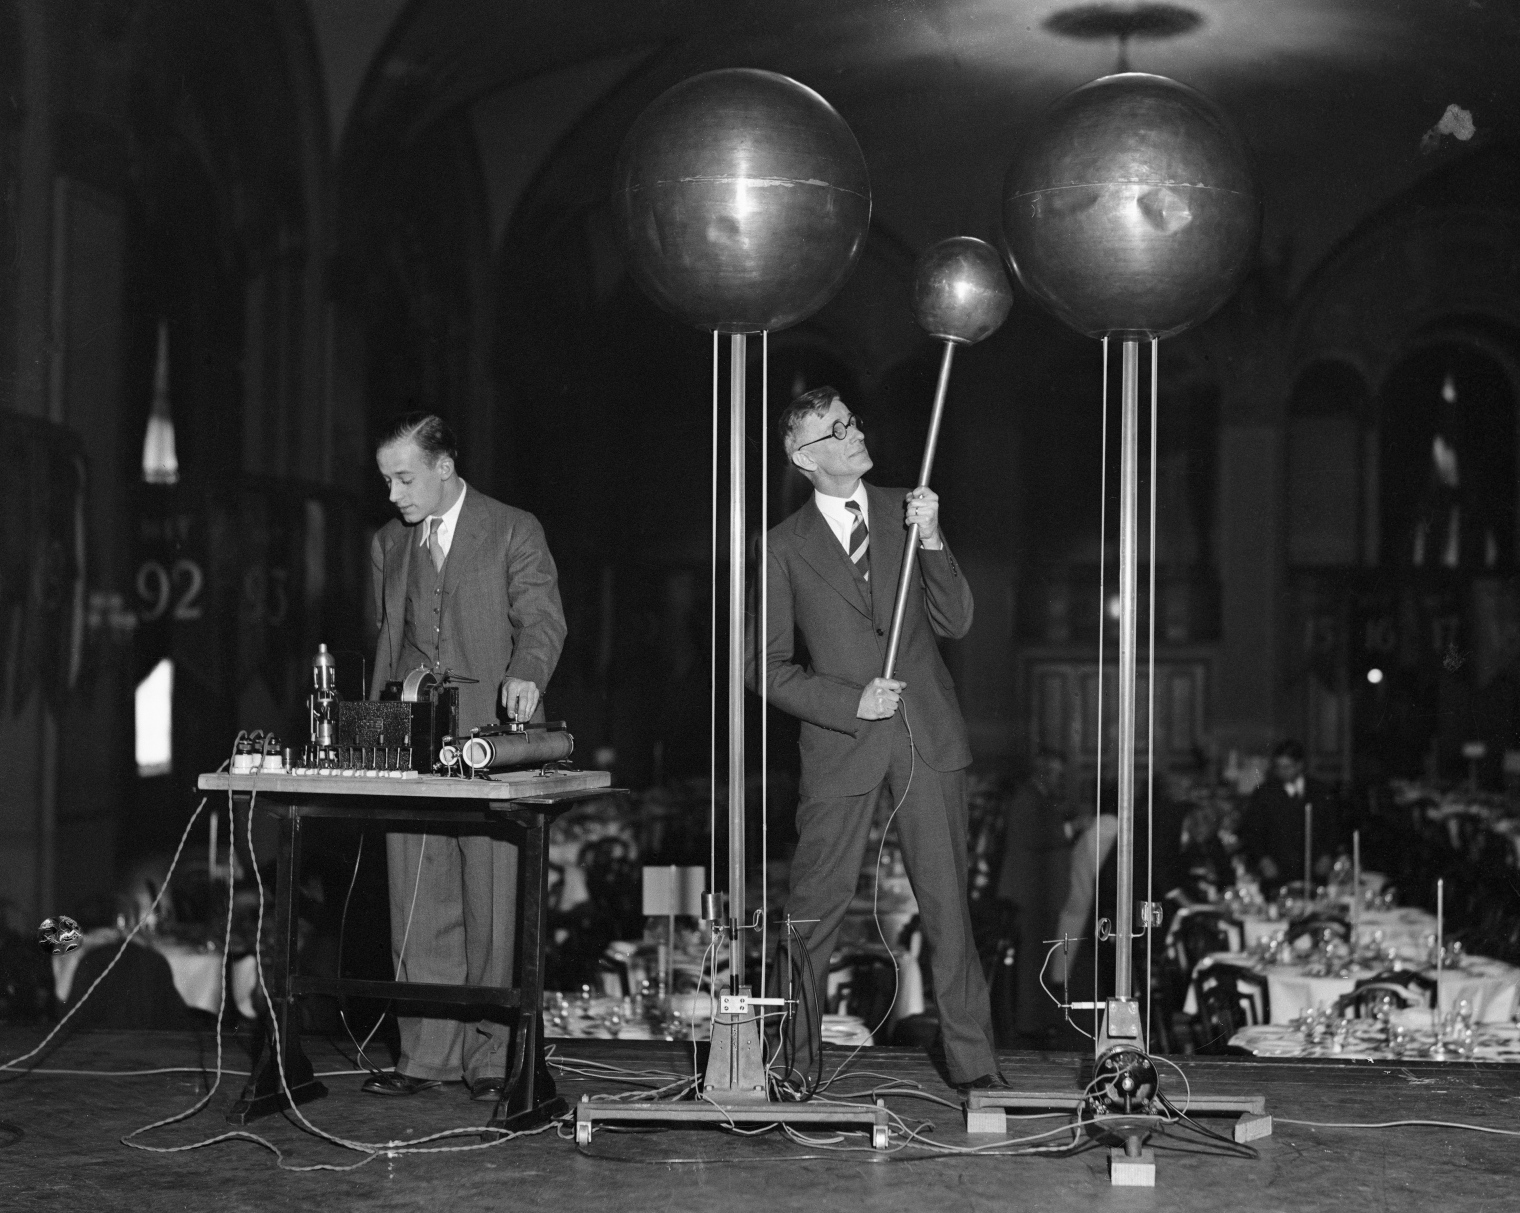 Dr. Vannevar Bush, right, and E.S. Lamar demonstrate the Dr. Robert Van De Graf 1,500,000 volt generator at the annual Dinner of Technology Alumni in the Copley Plaza. The generator is said to be capable of producing a shock of 10,000,000 volts.